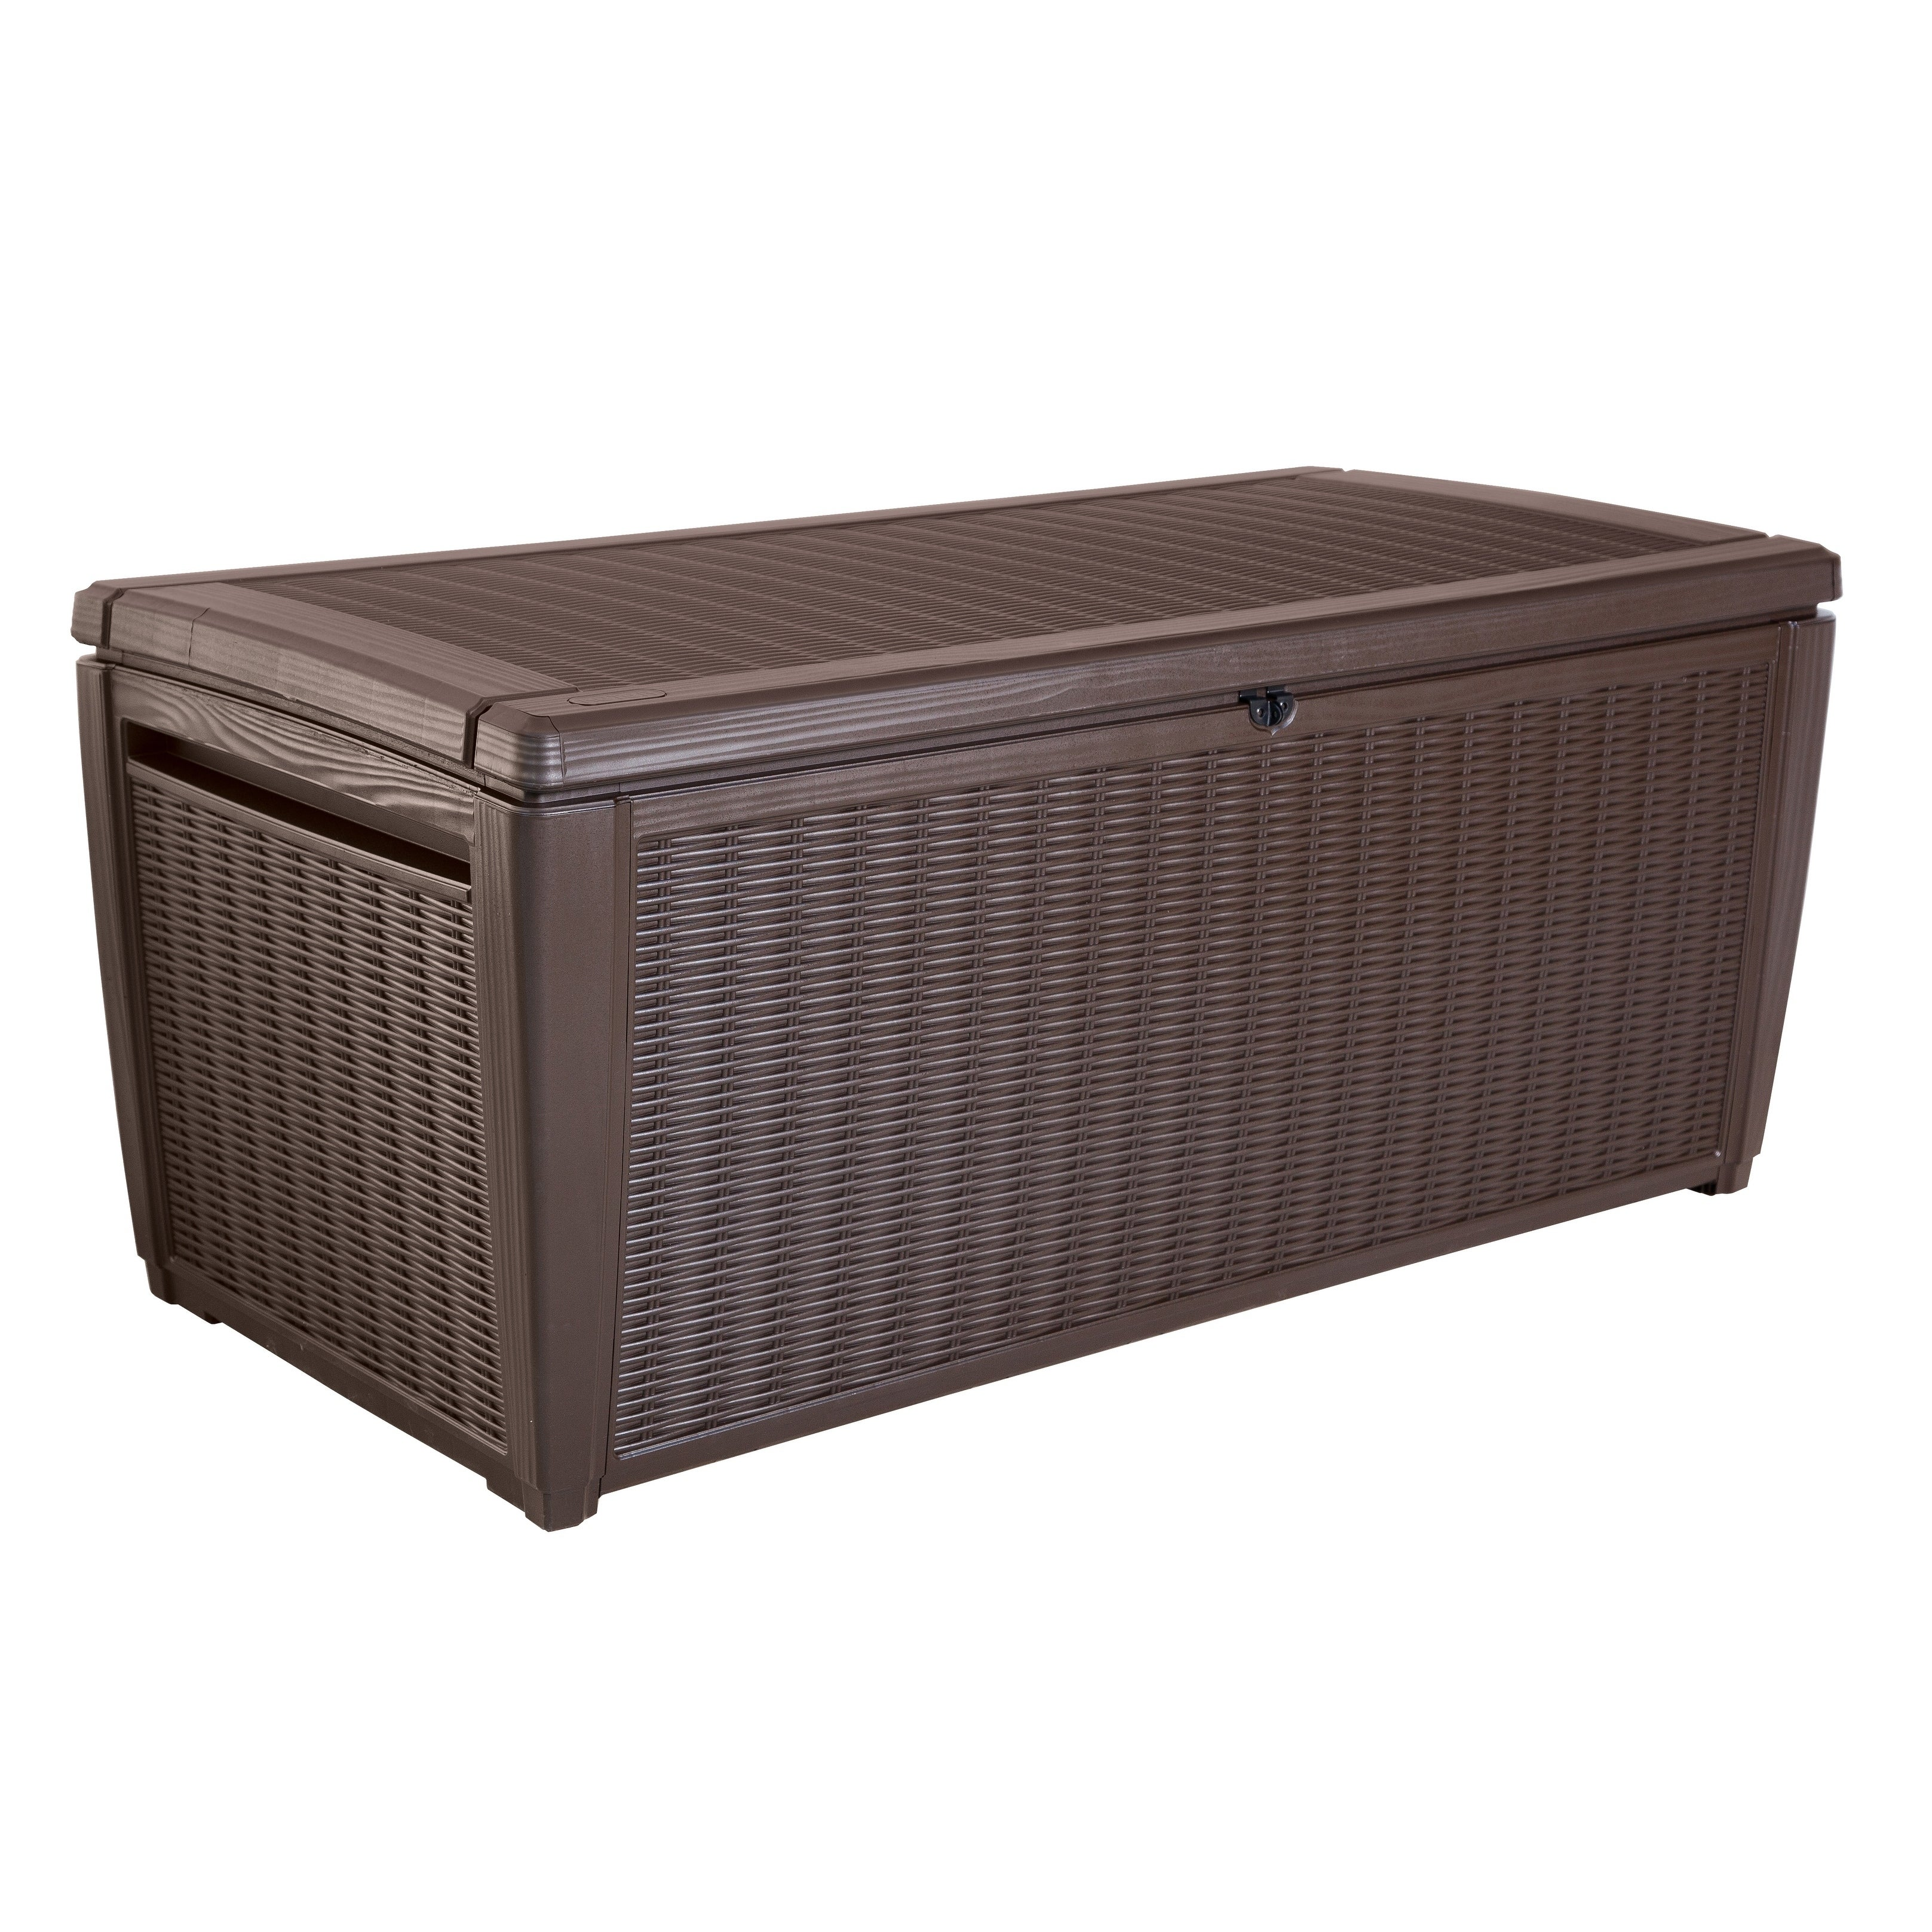 Delicieux Shop Keter Sumatra 135 Gallon Outdoor Storage Rattan Deck Box   Free  Shipping Today   Overstock.com   17852950